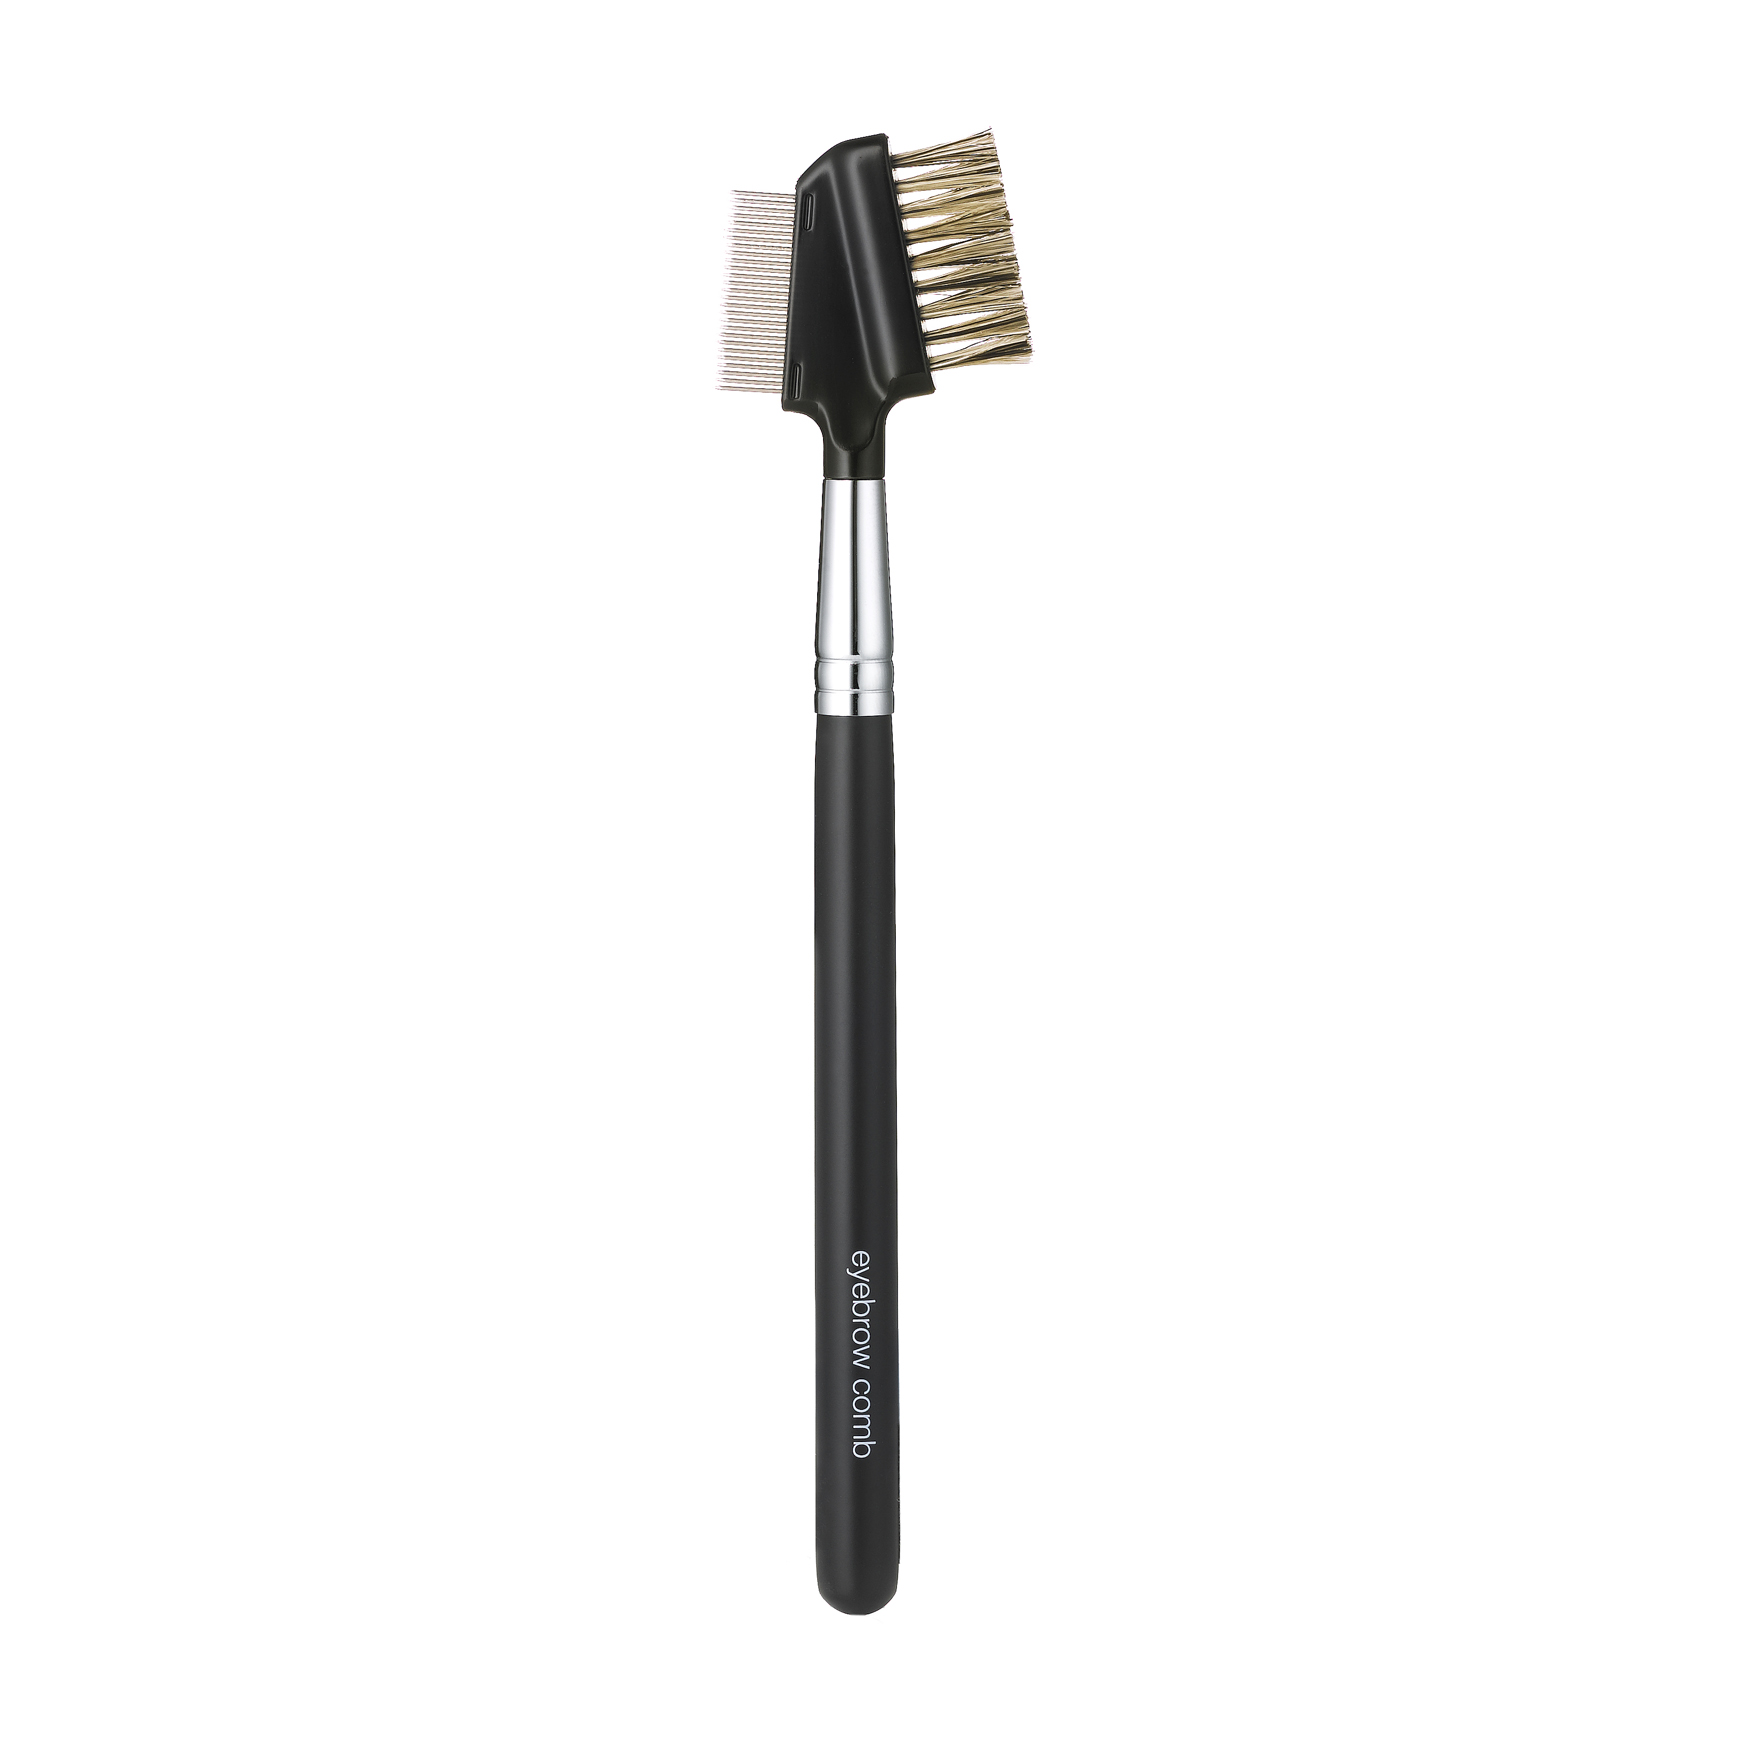 Eyebrow Comb, , large